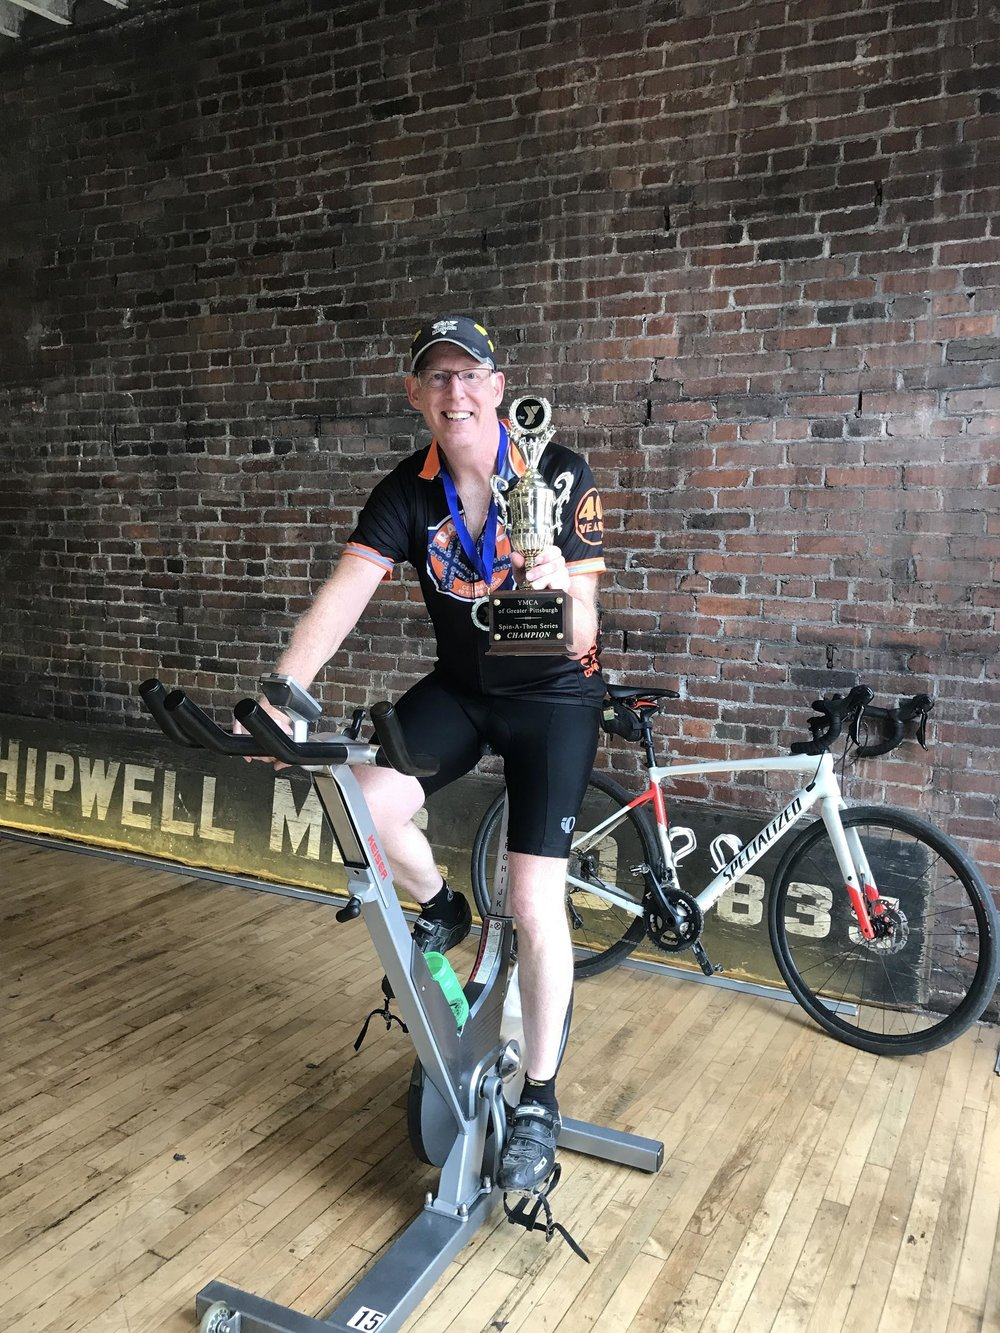 Mike Lloyd, winner of the October 2017 Allegheny YMCA Spin-A-Thon